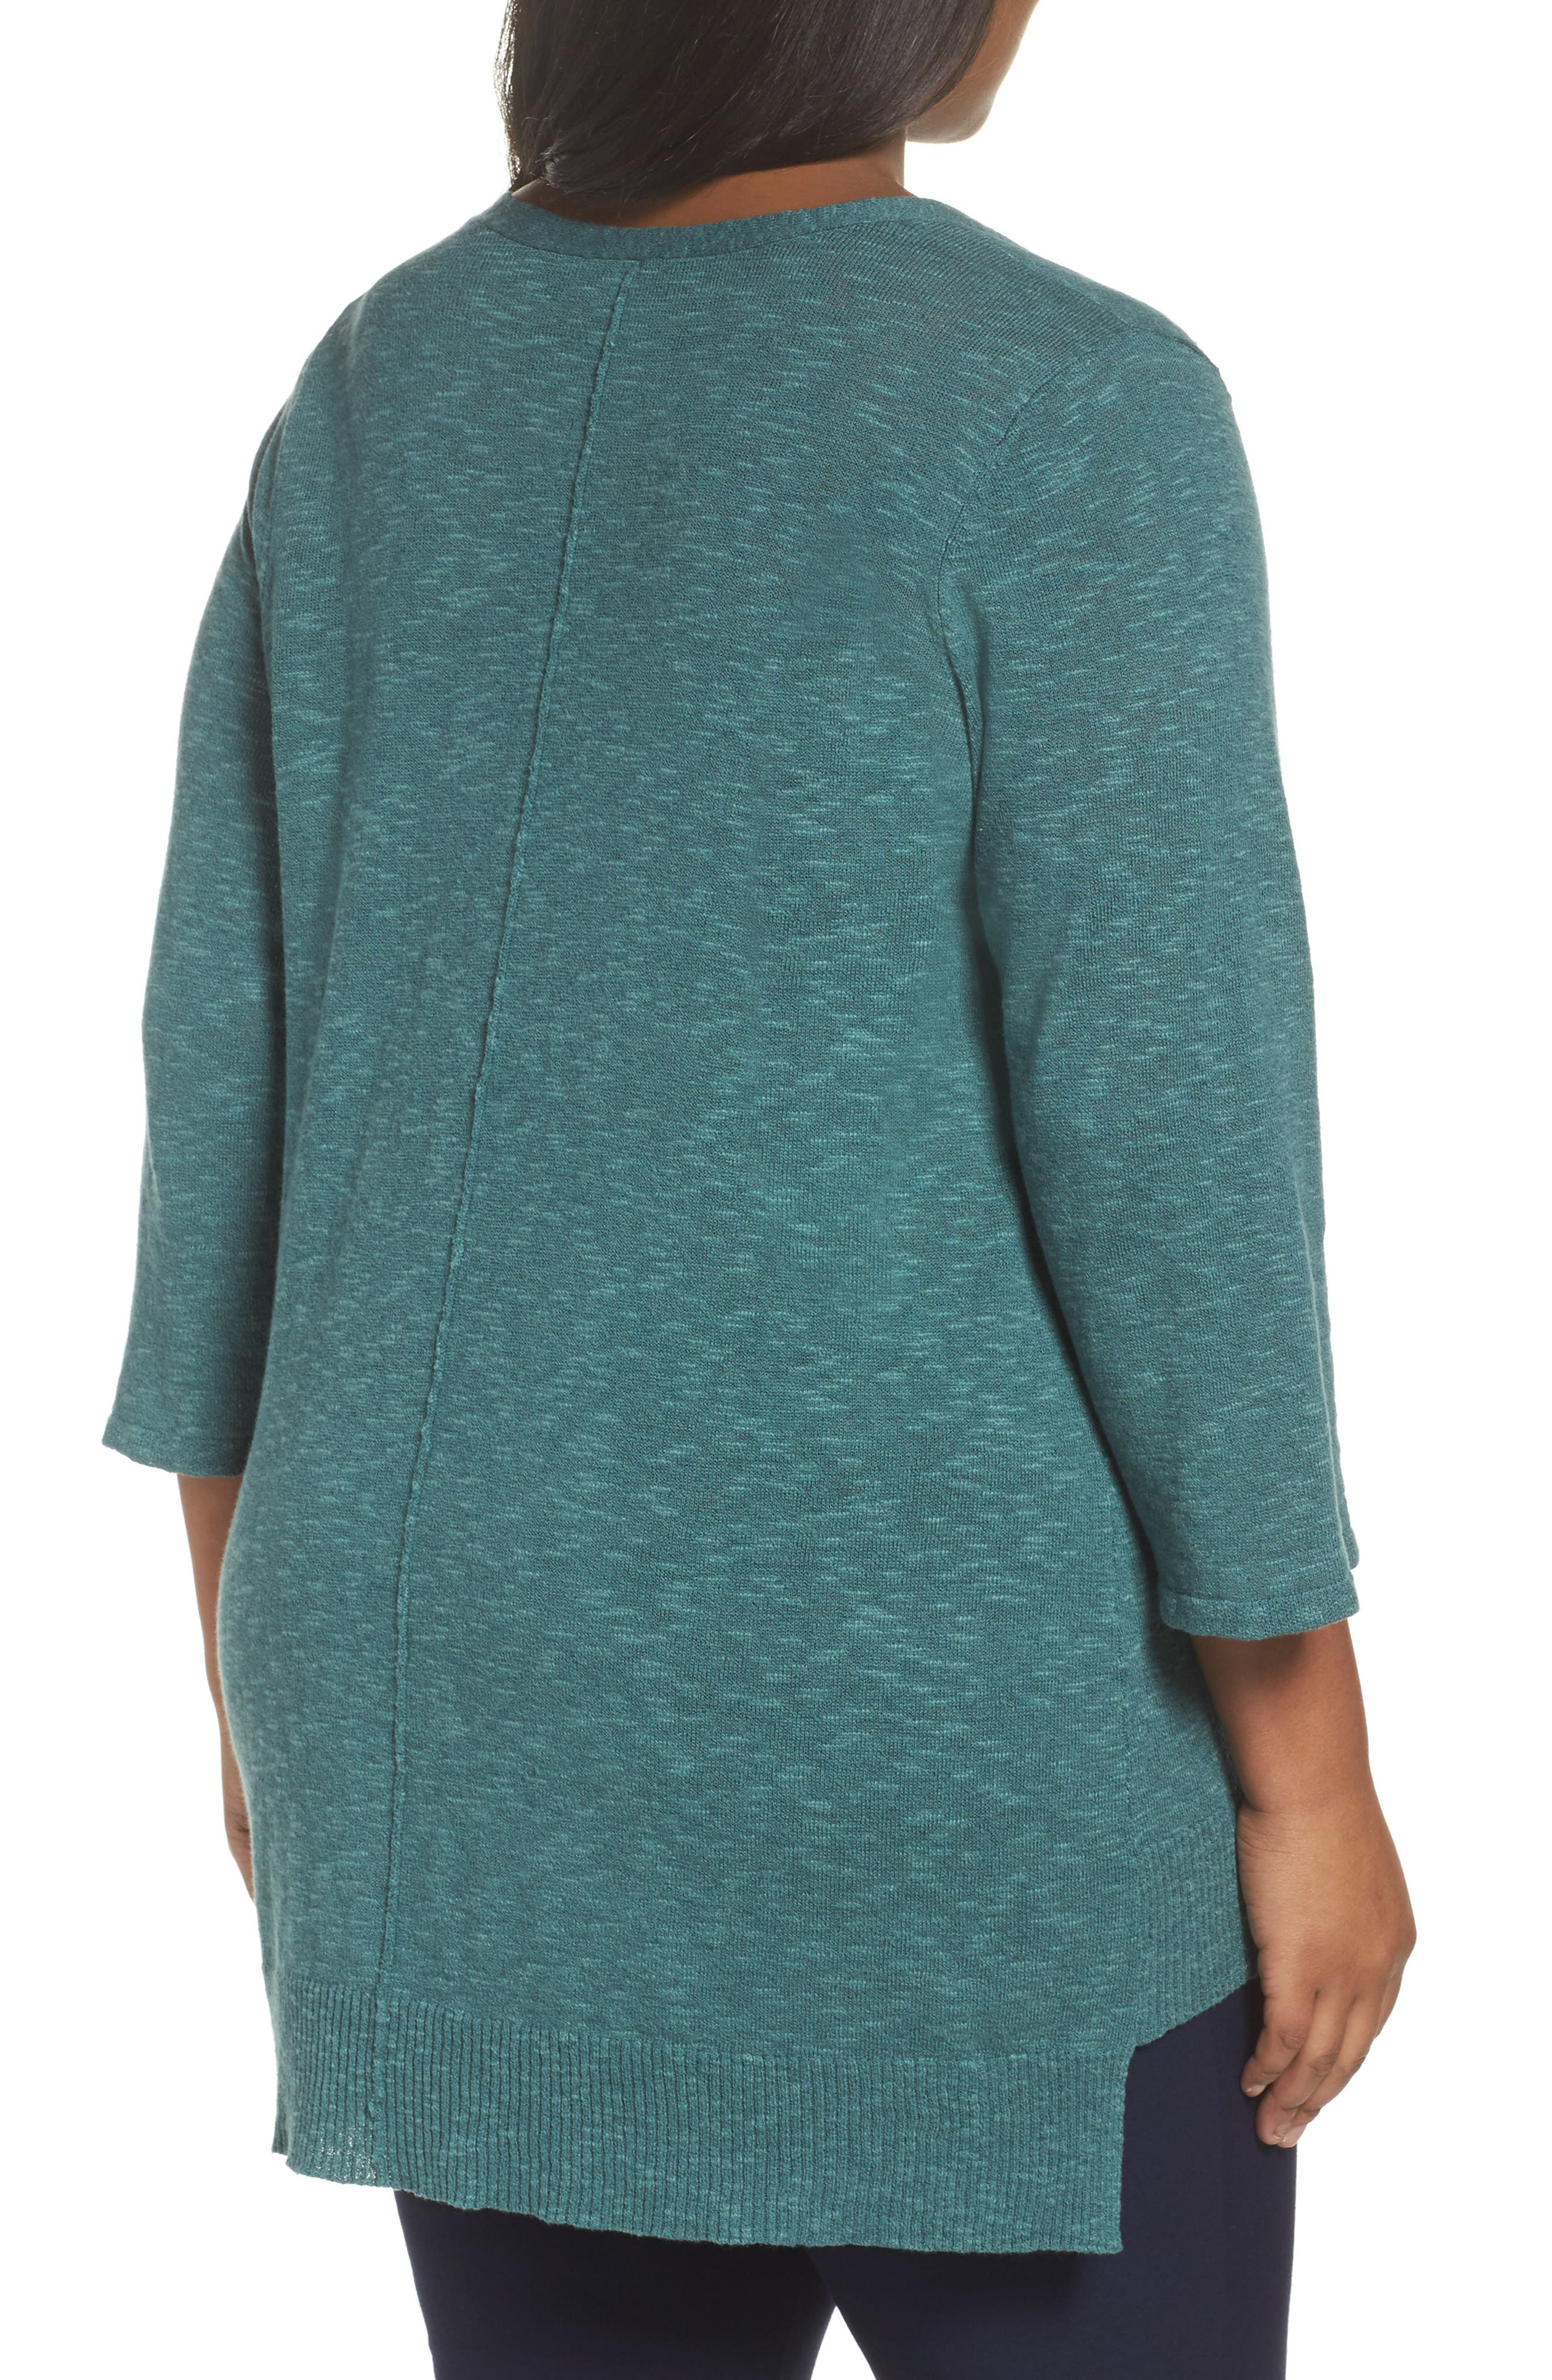 Alternate Image 2  - Eileen Fisher Organic Linen & Cotton High/Low Sweater (Plus Size)